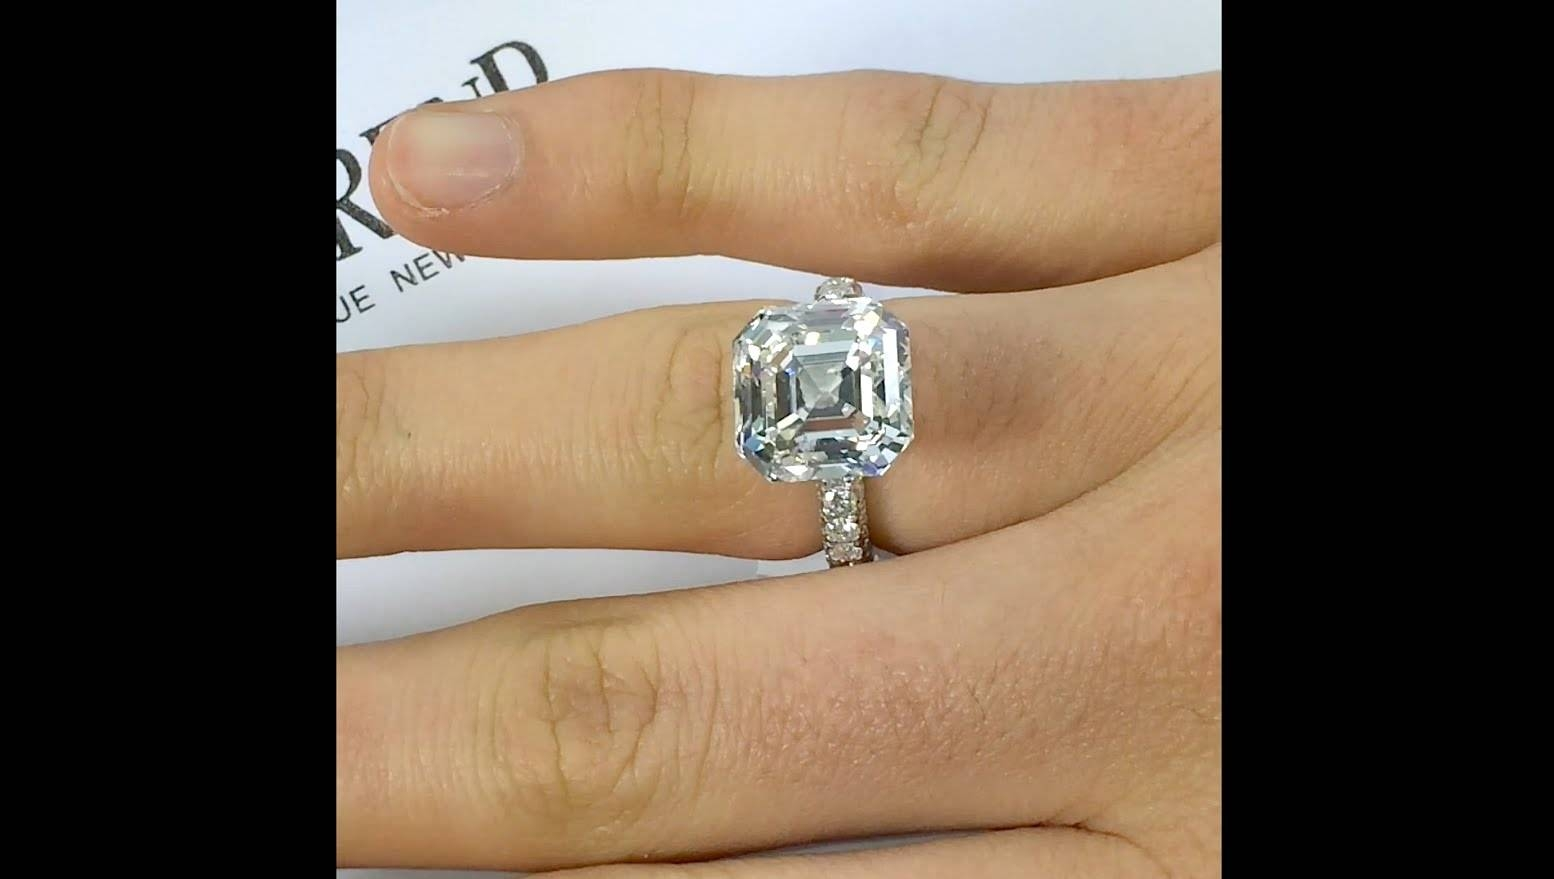 10 Carat Asscher Cut Diamond Engagement Ring – Youtube Pertaining To Asscher Diamond Engagement Rings (View 3 of 15)